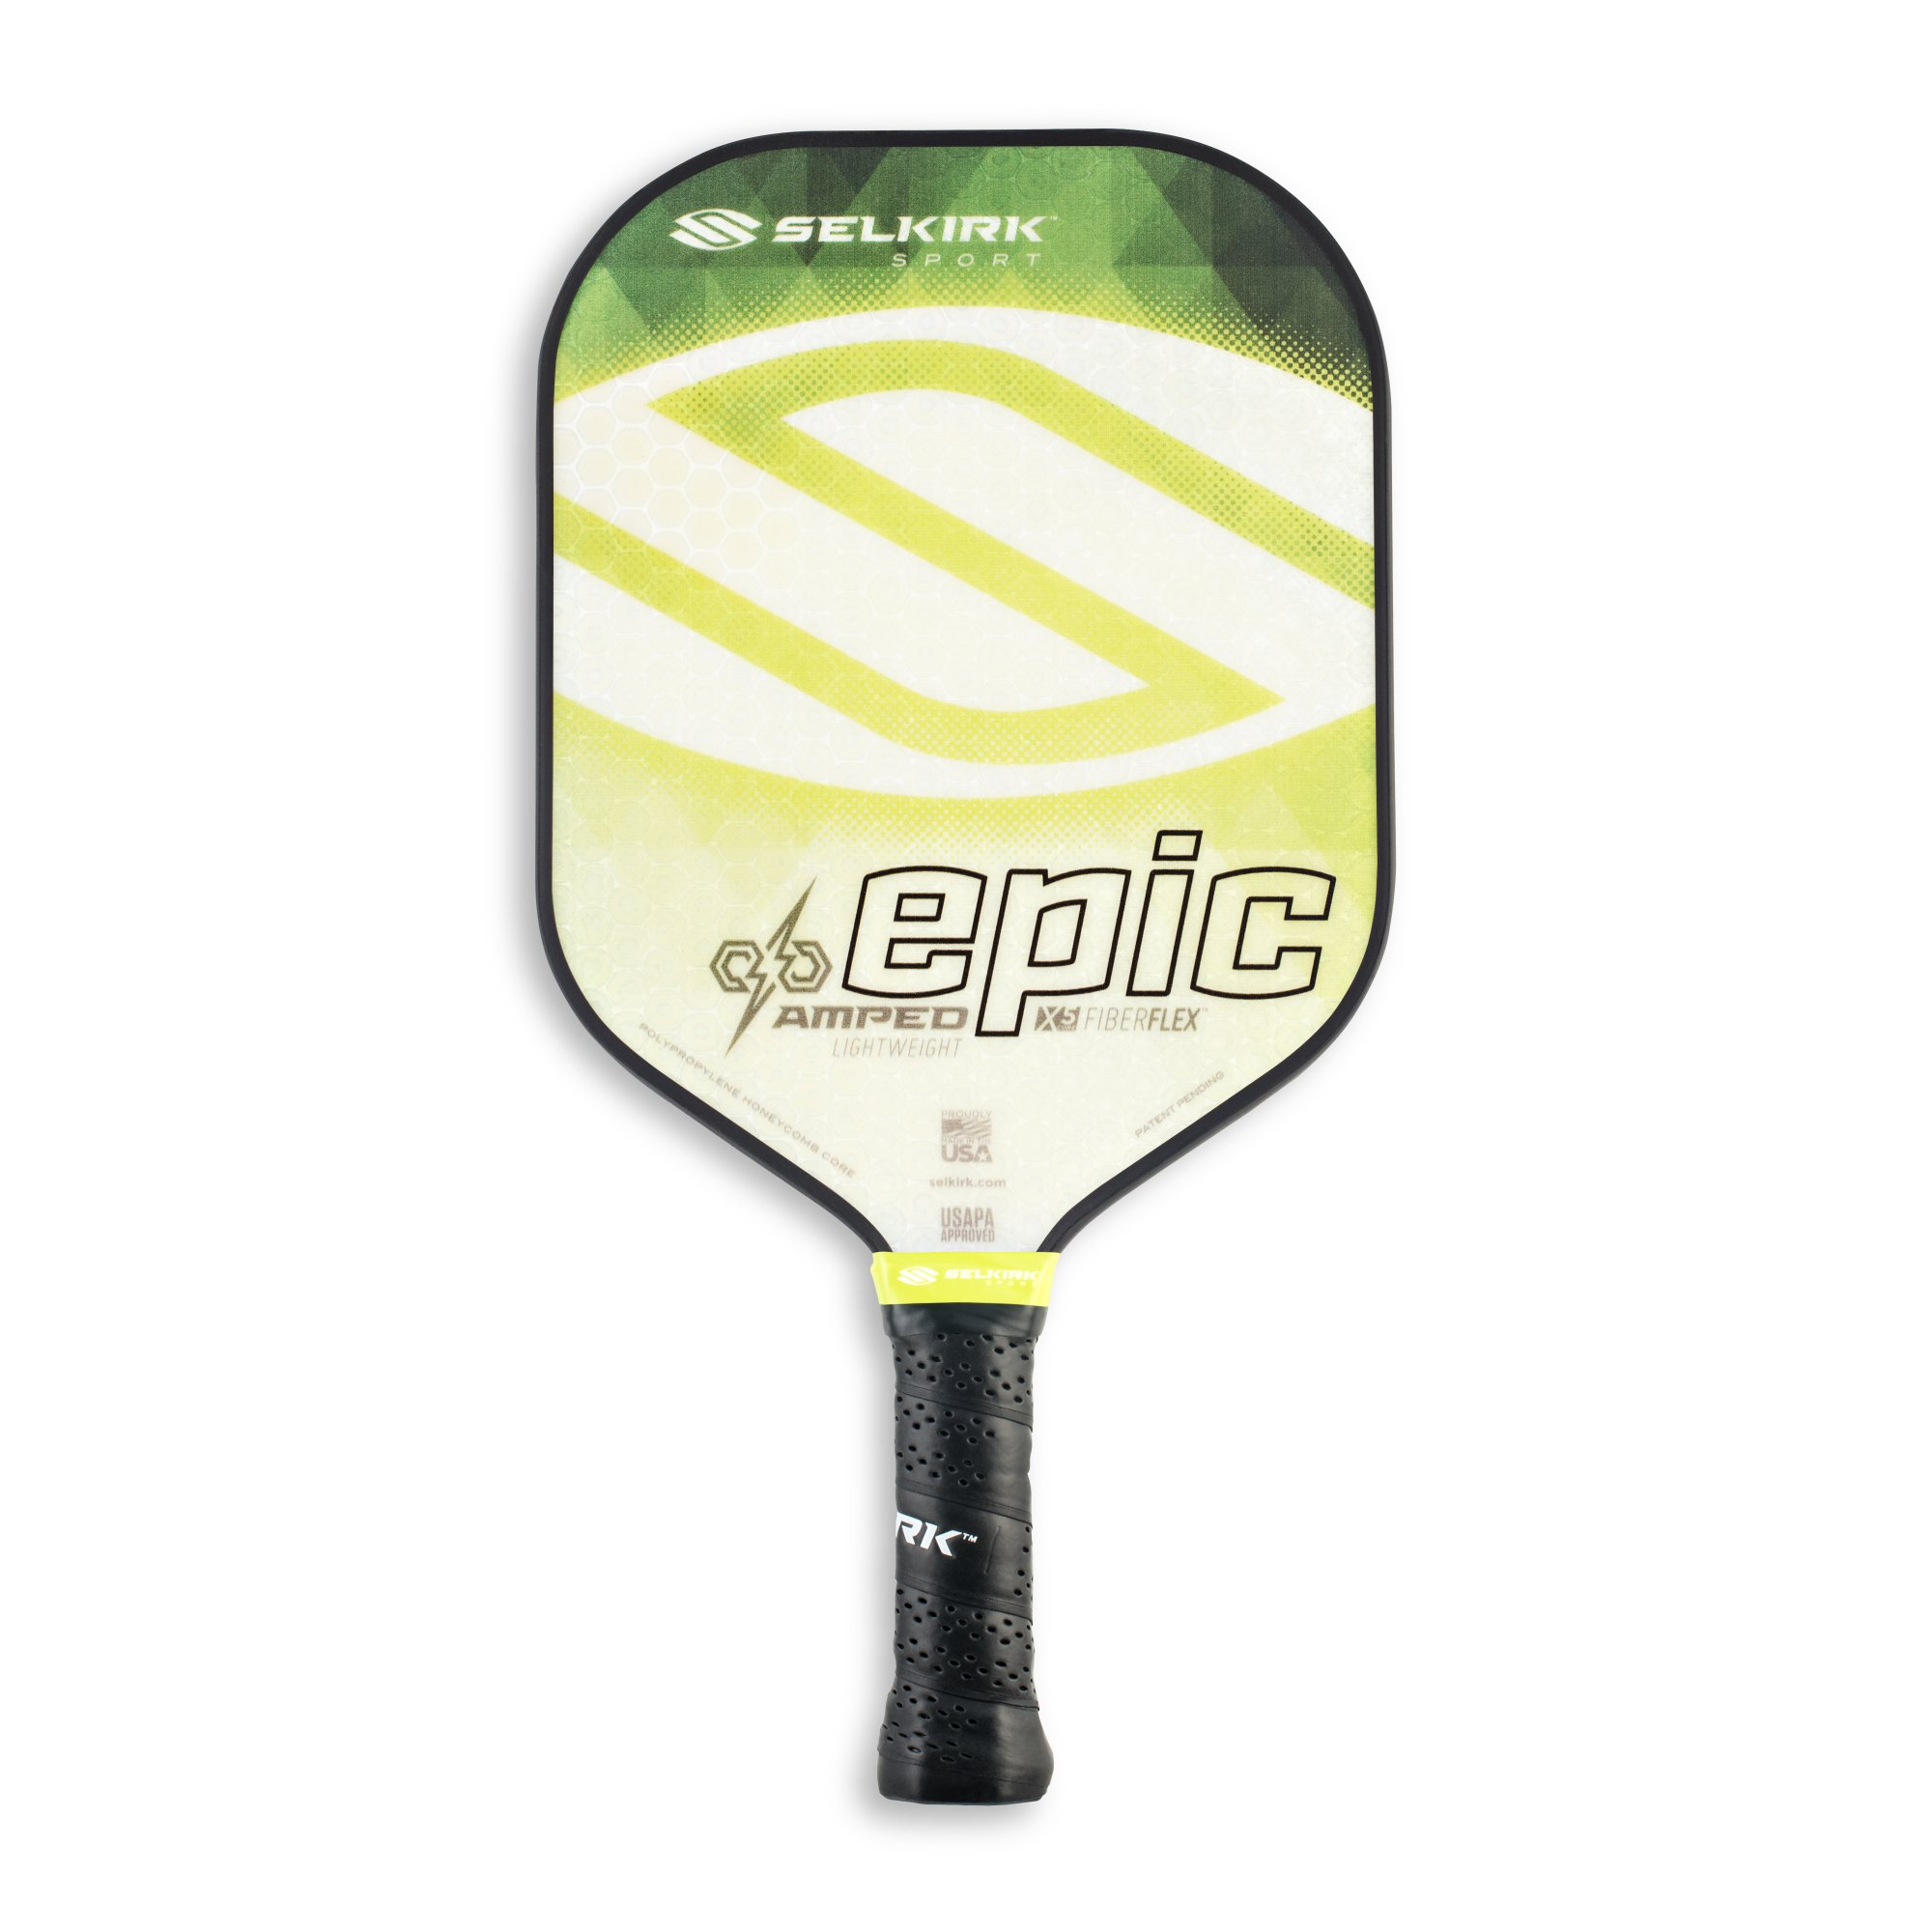 Selkirk Amped Pickleball Paddle - USAPA Approved - X5 Polypropylene Core - FiberFlex Fiberglass Face - 5 Sizes: Epic, S2, Omni, Maxima, and INVIKTA (Epic Lightweight - Emerald Green)